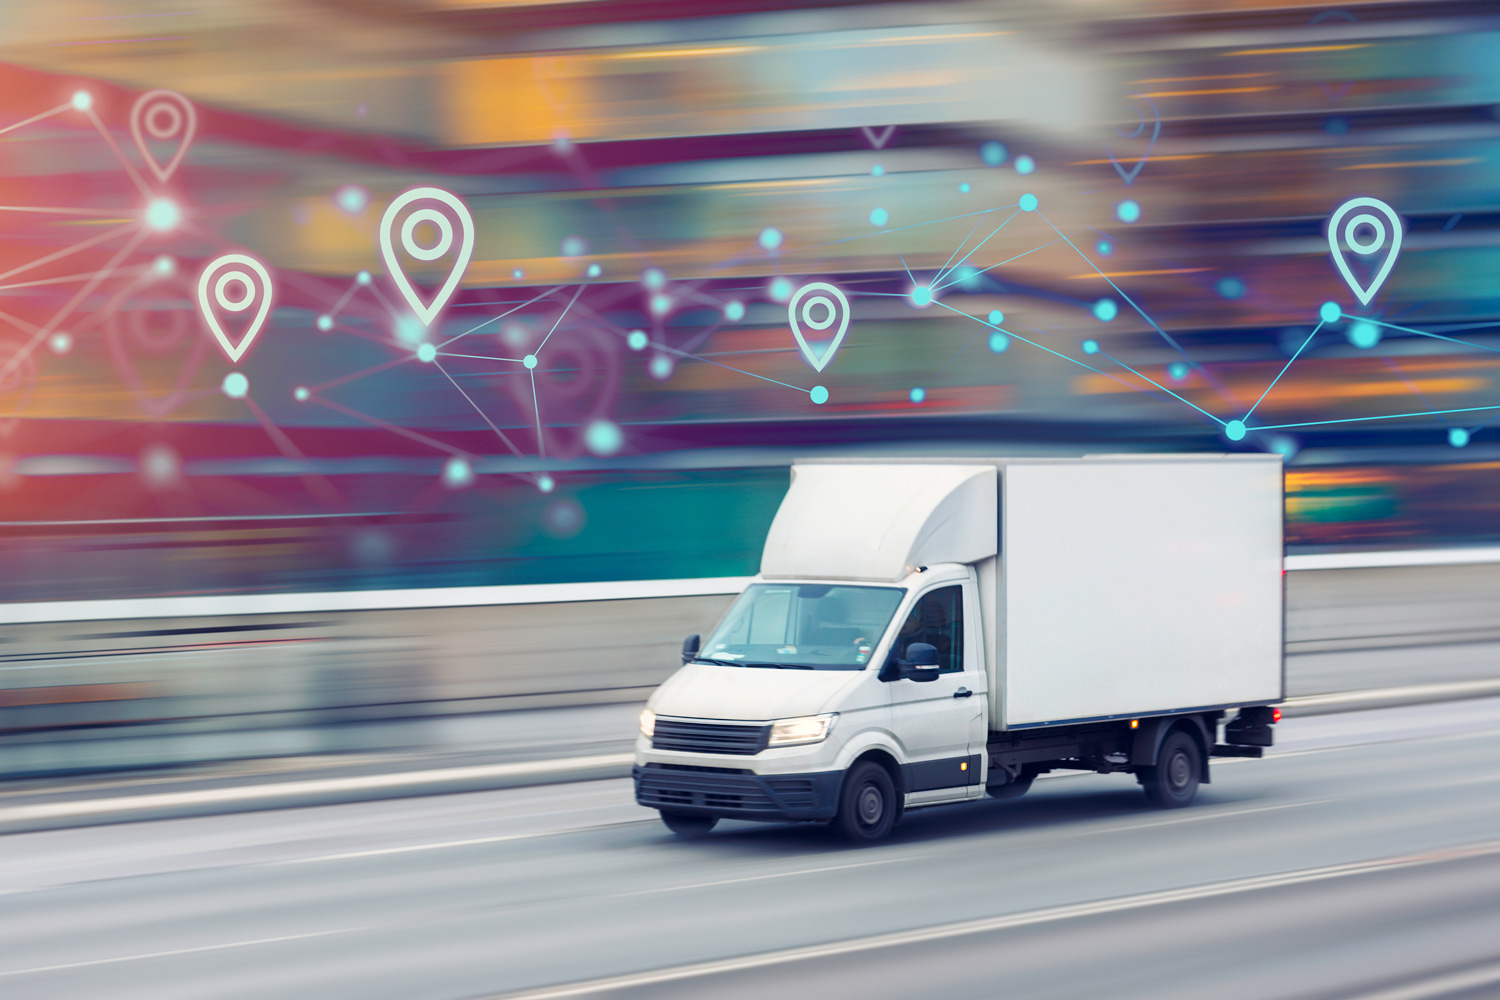 A dispatch and routing platform to improve deliveries